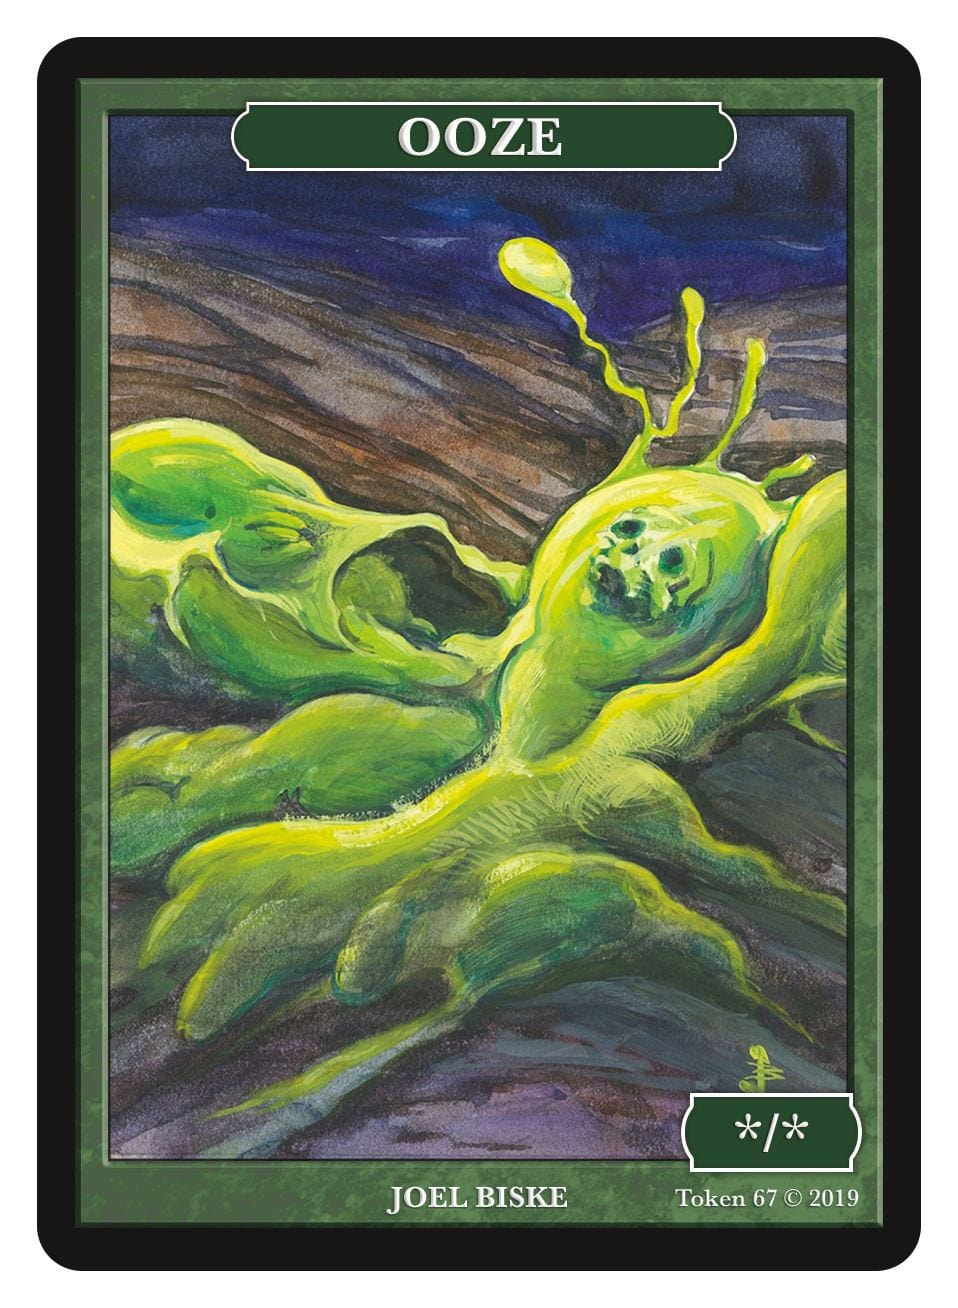 Ooze Token (*/*) by Joel Biske - Token - Original Magic Art - Accessories for Magic the Gathering and other card games